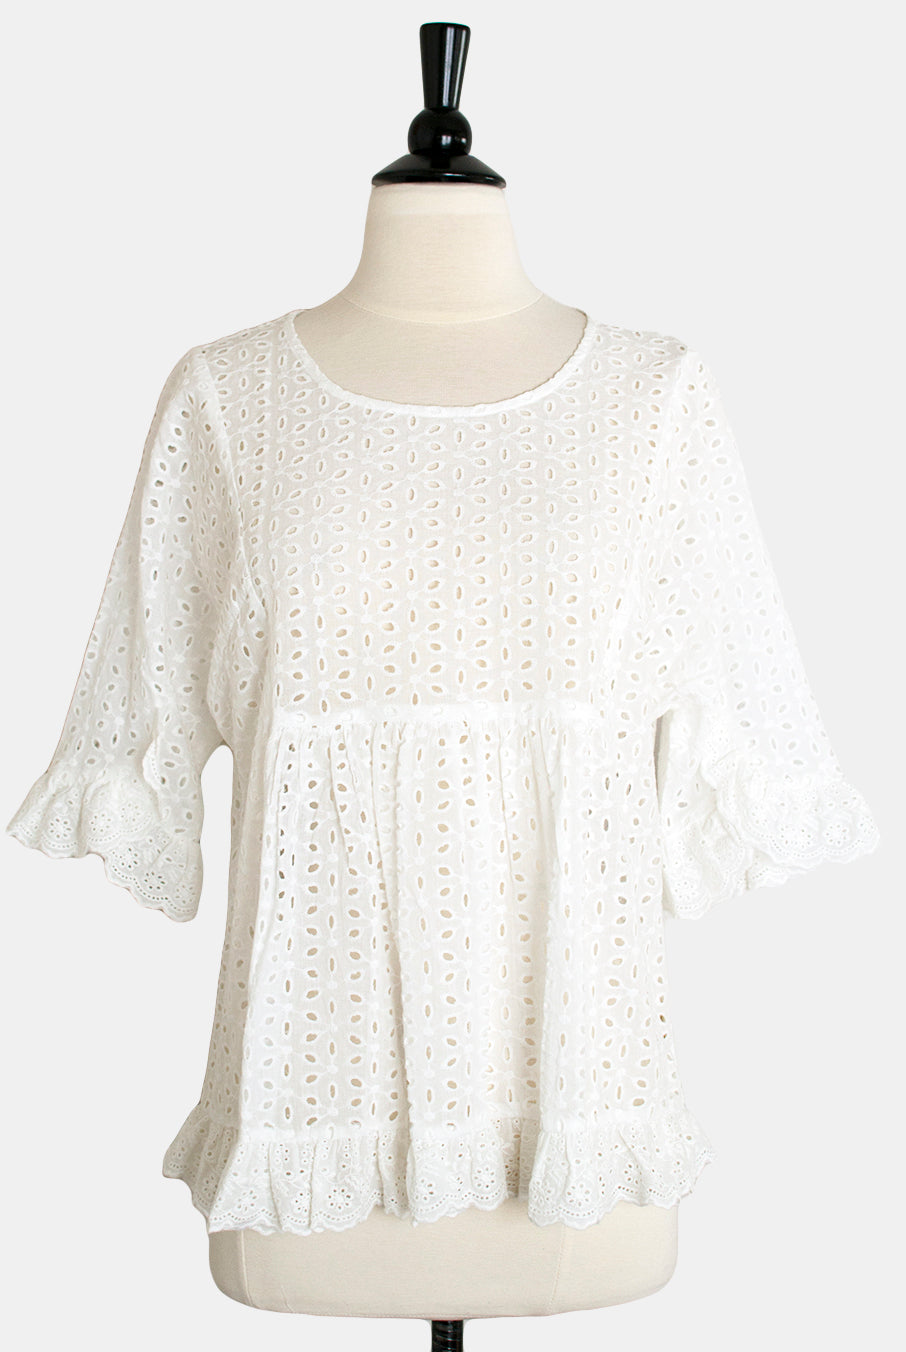 4180c16041aeb Mystree White Cotton Lola Eyelet Ruffle Top - Hourglass Boutique - 1 ...